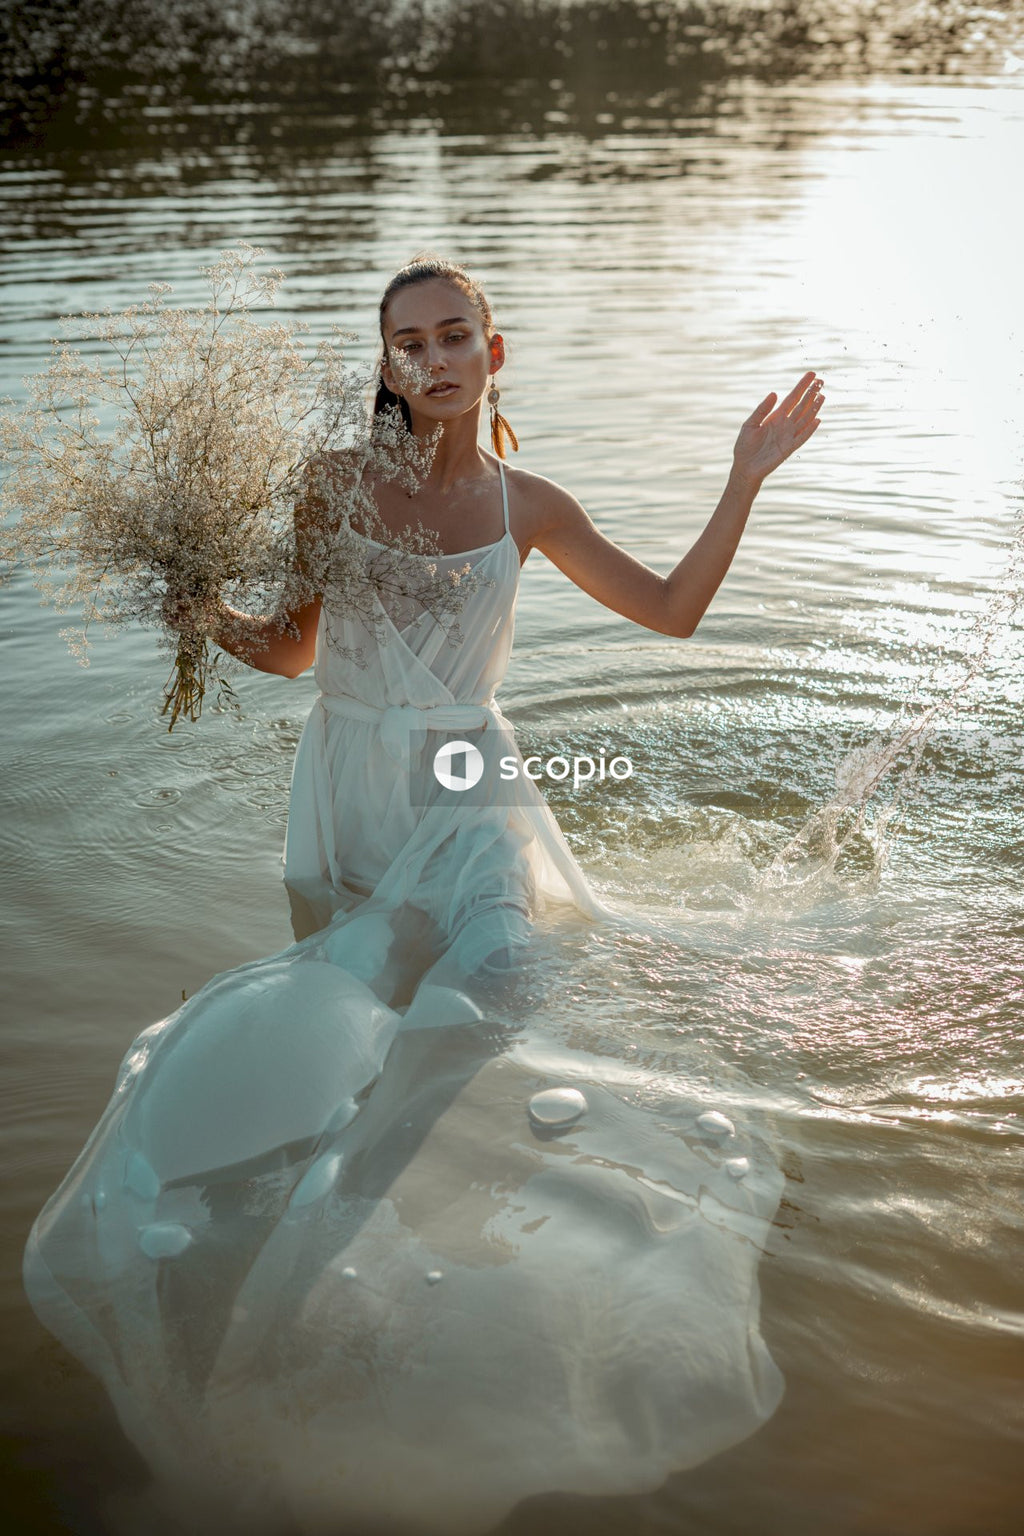 Woman in white dress on water